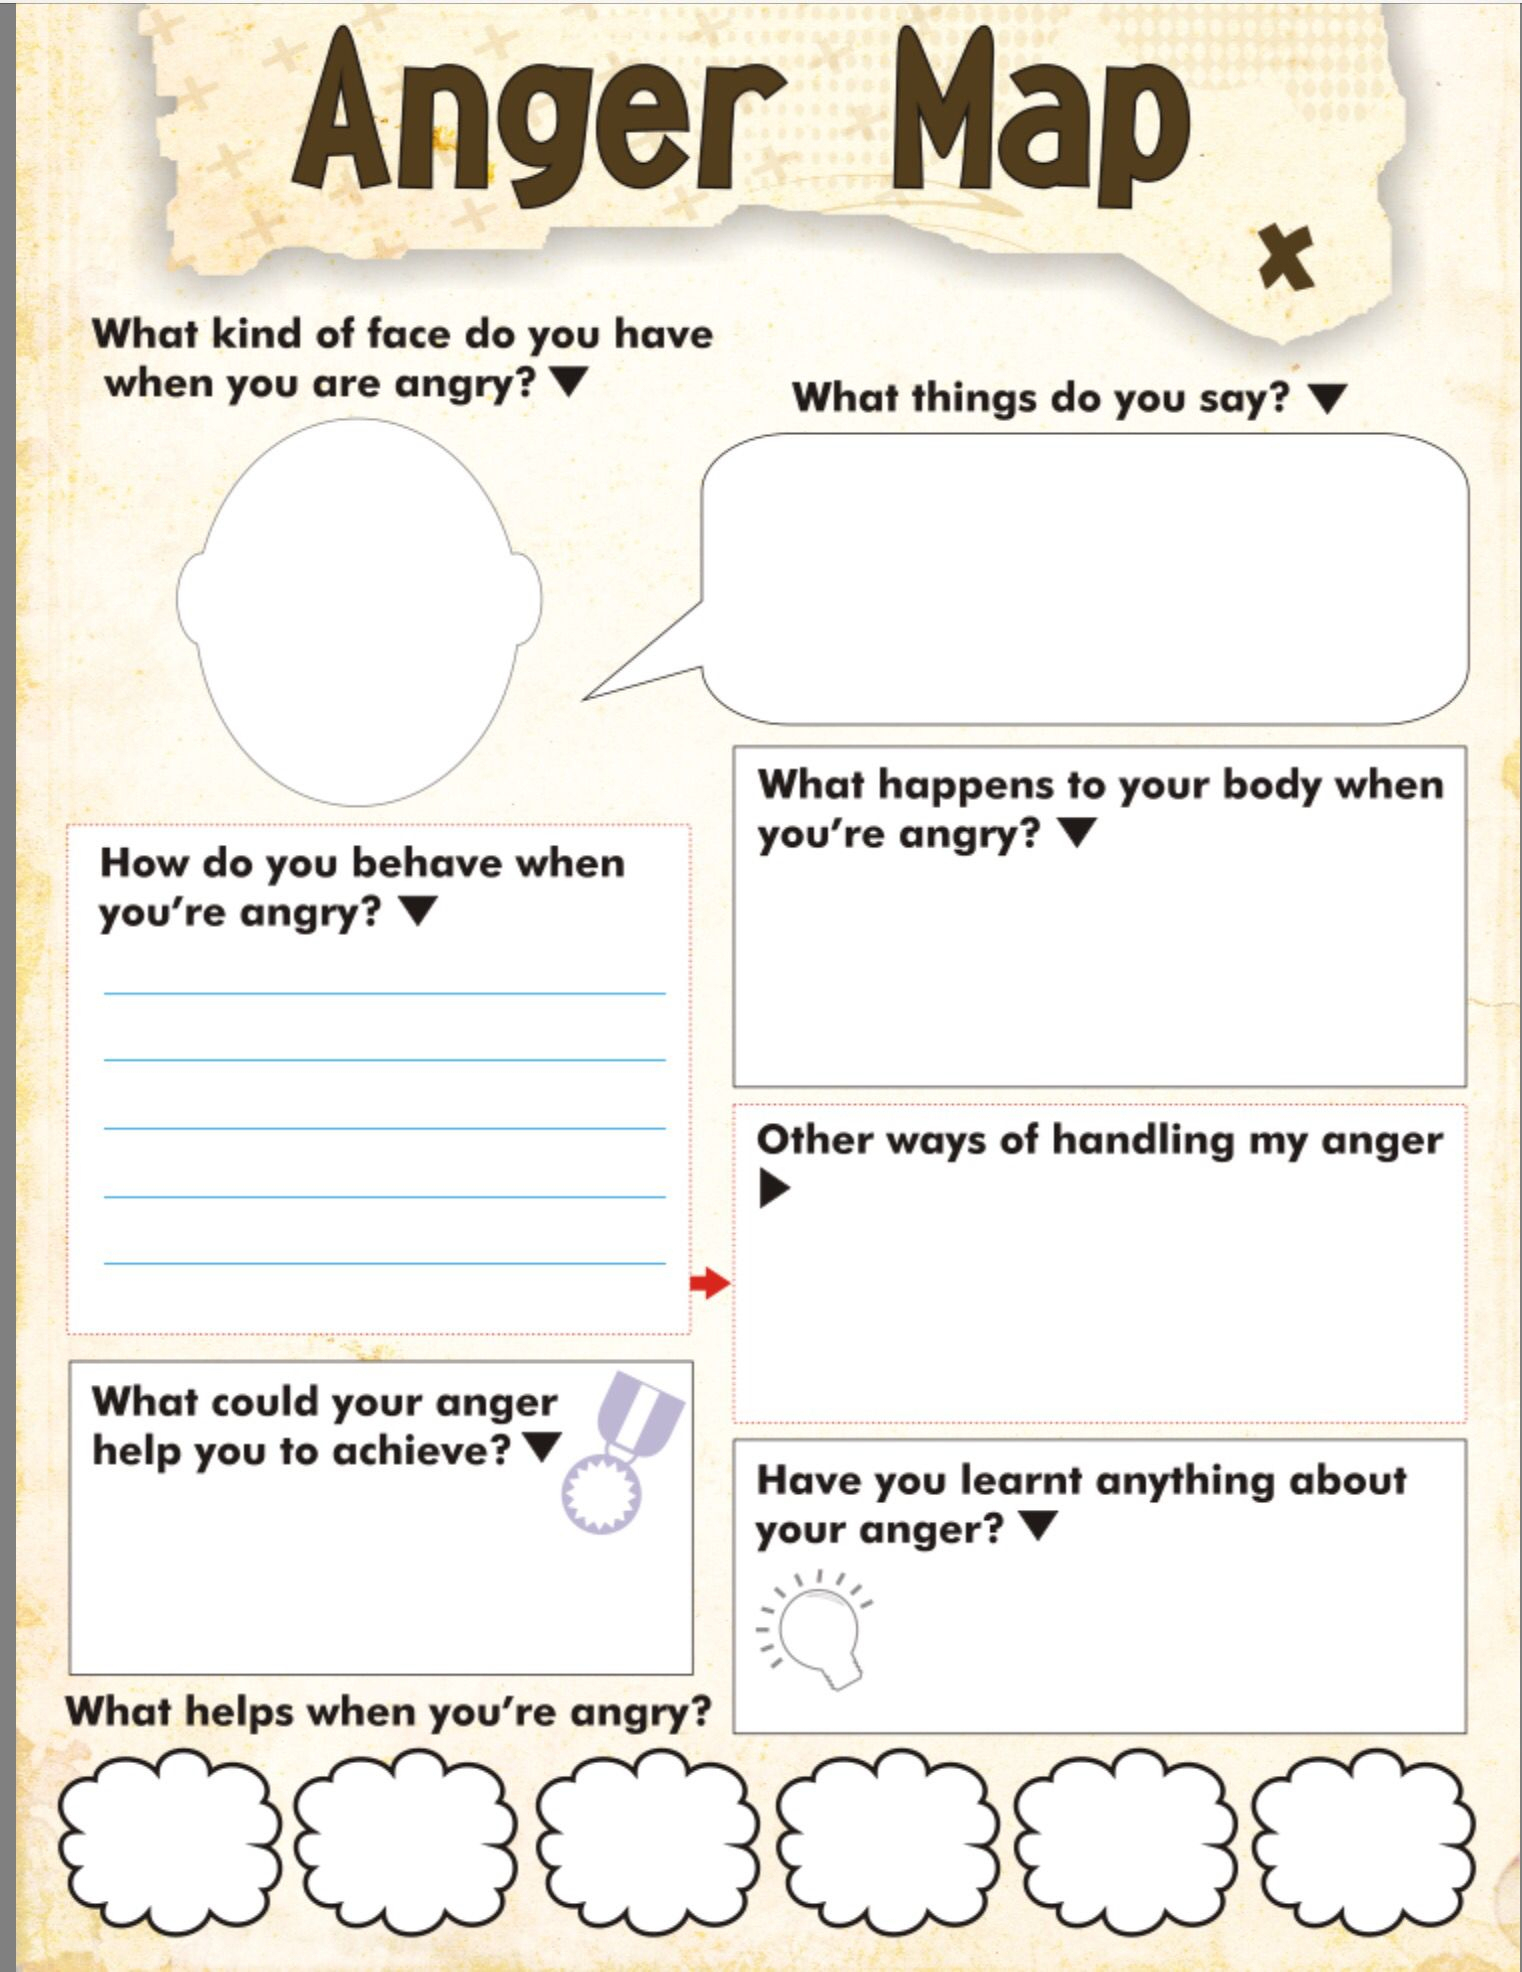 Anger Map Kids Worksheet Free Printable | Tools For Therapy X - Free | Anger Management Printable Worksheets